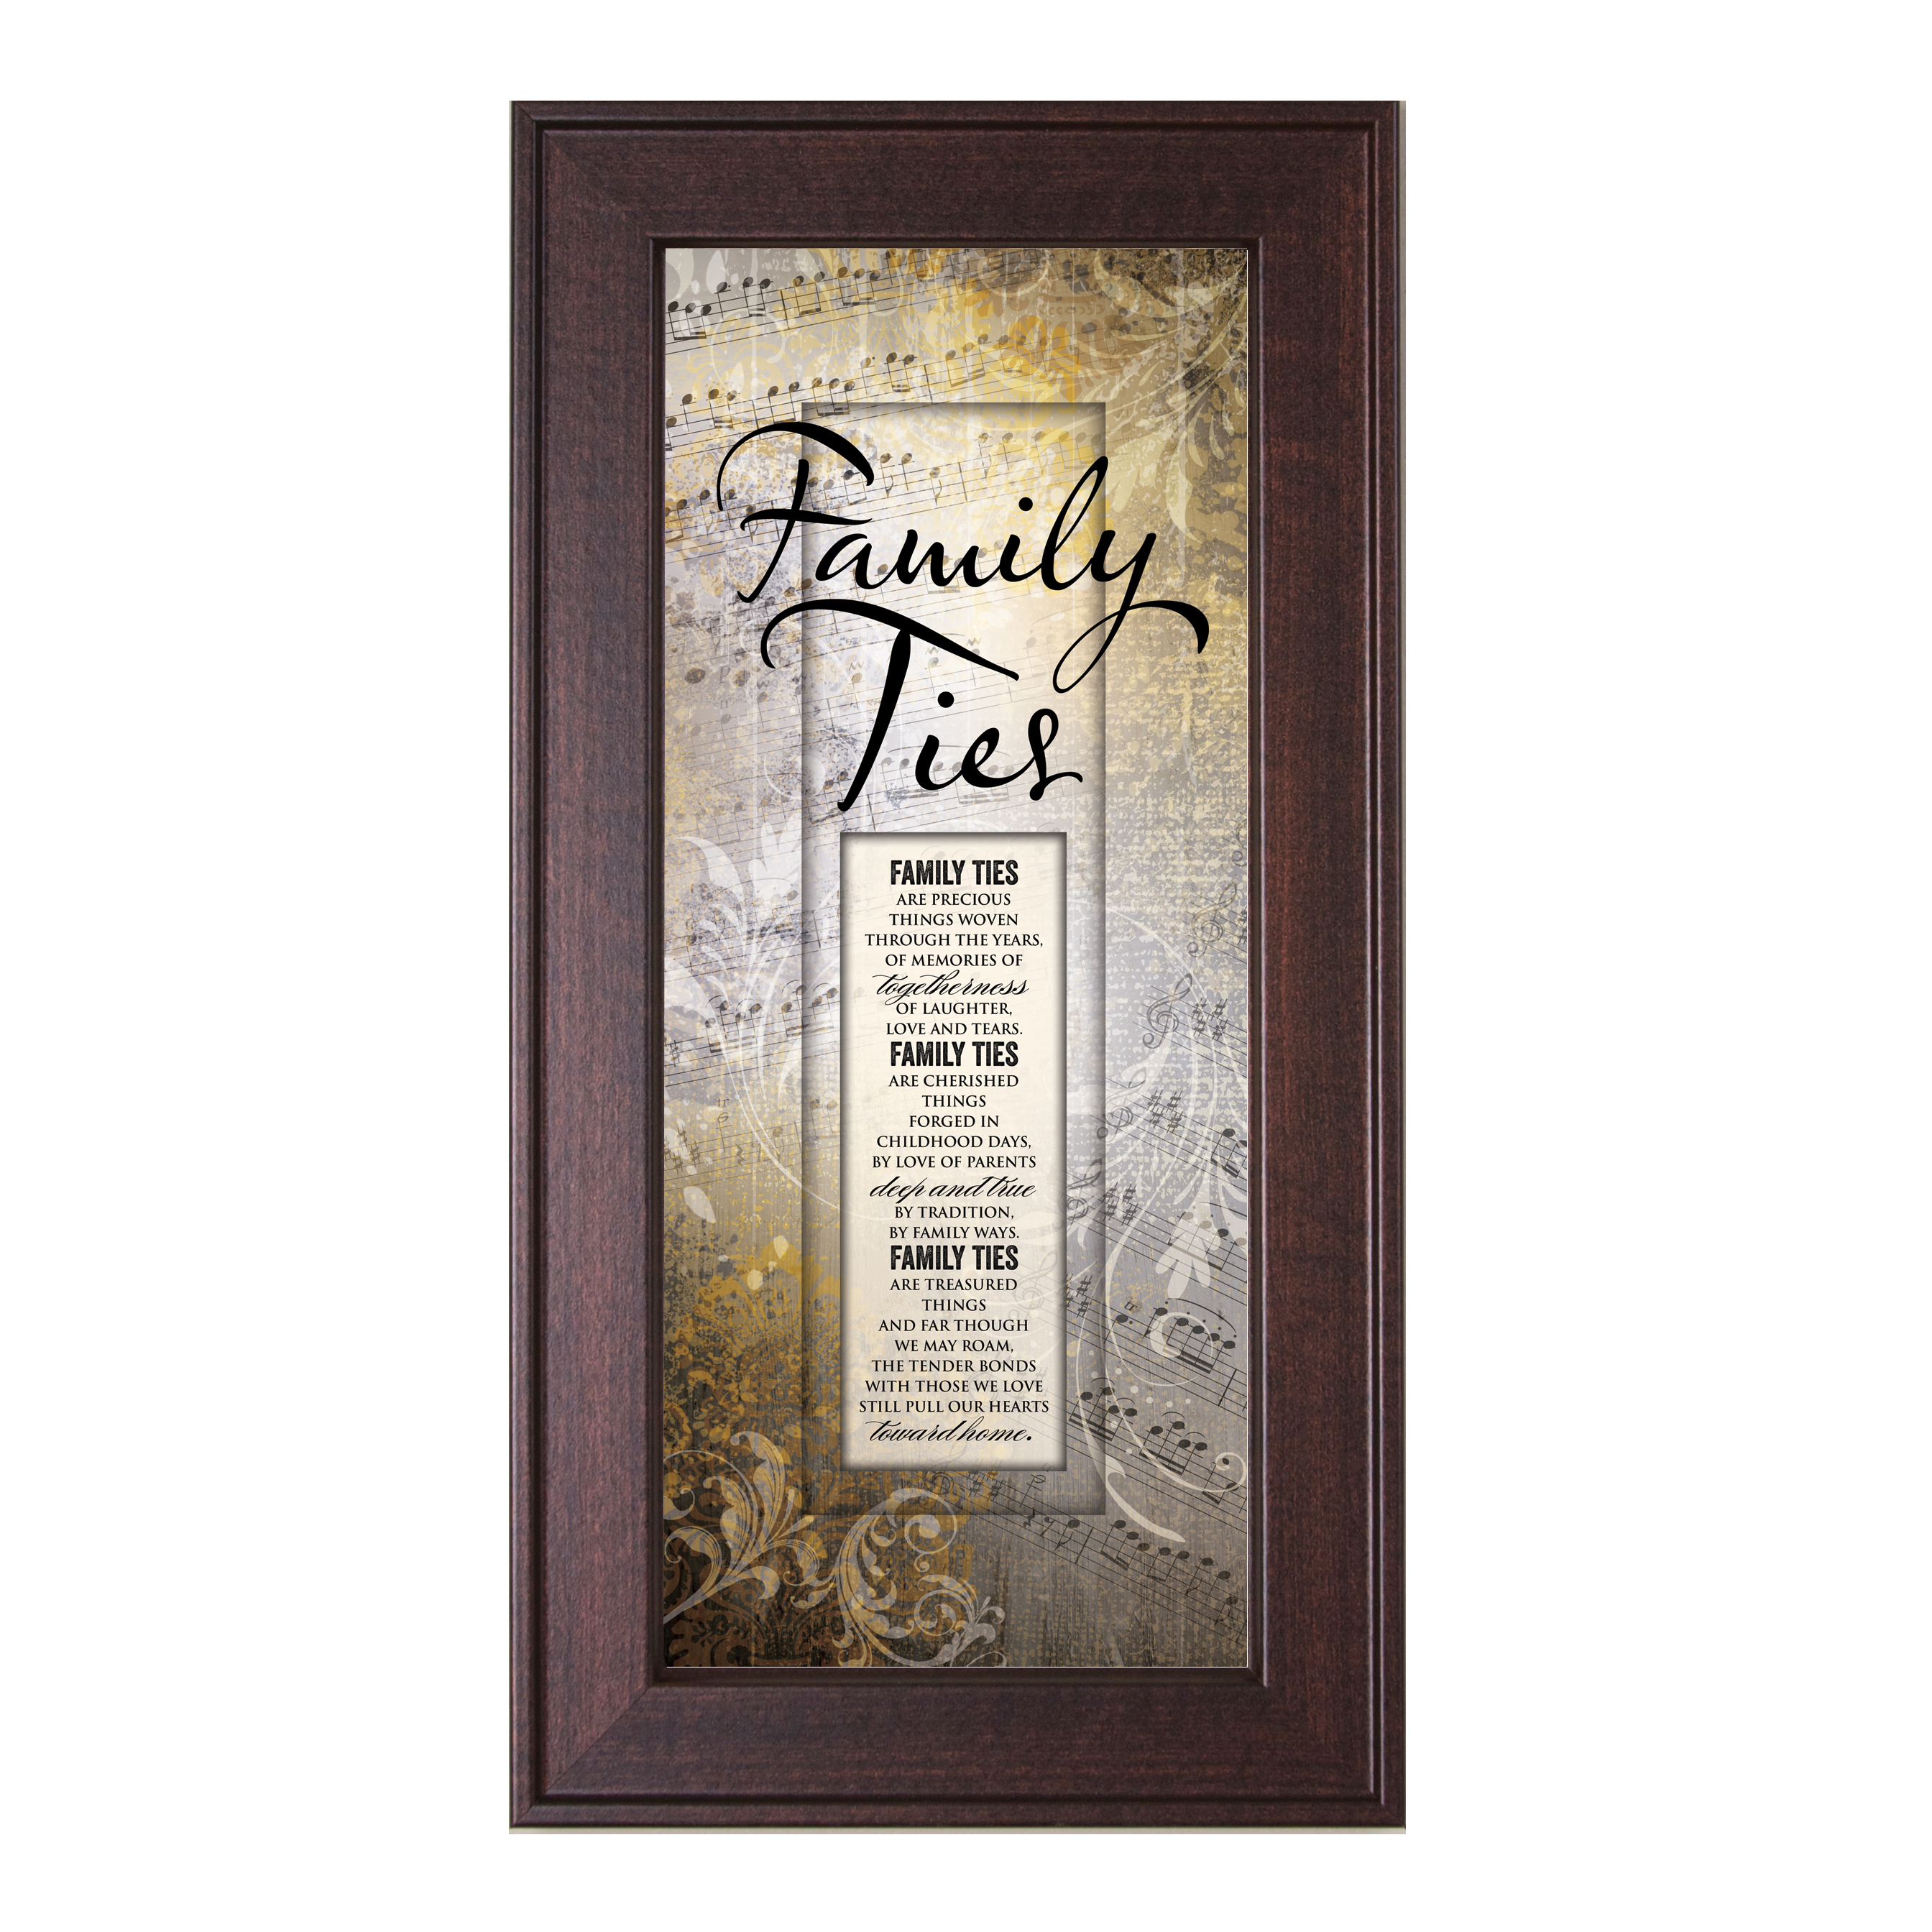 James Lawrence 'Family Ties' Framed Wall Art